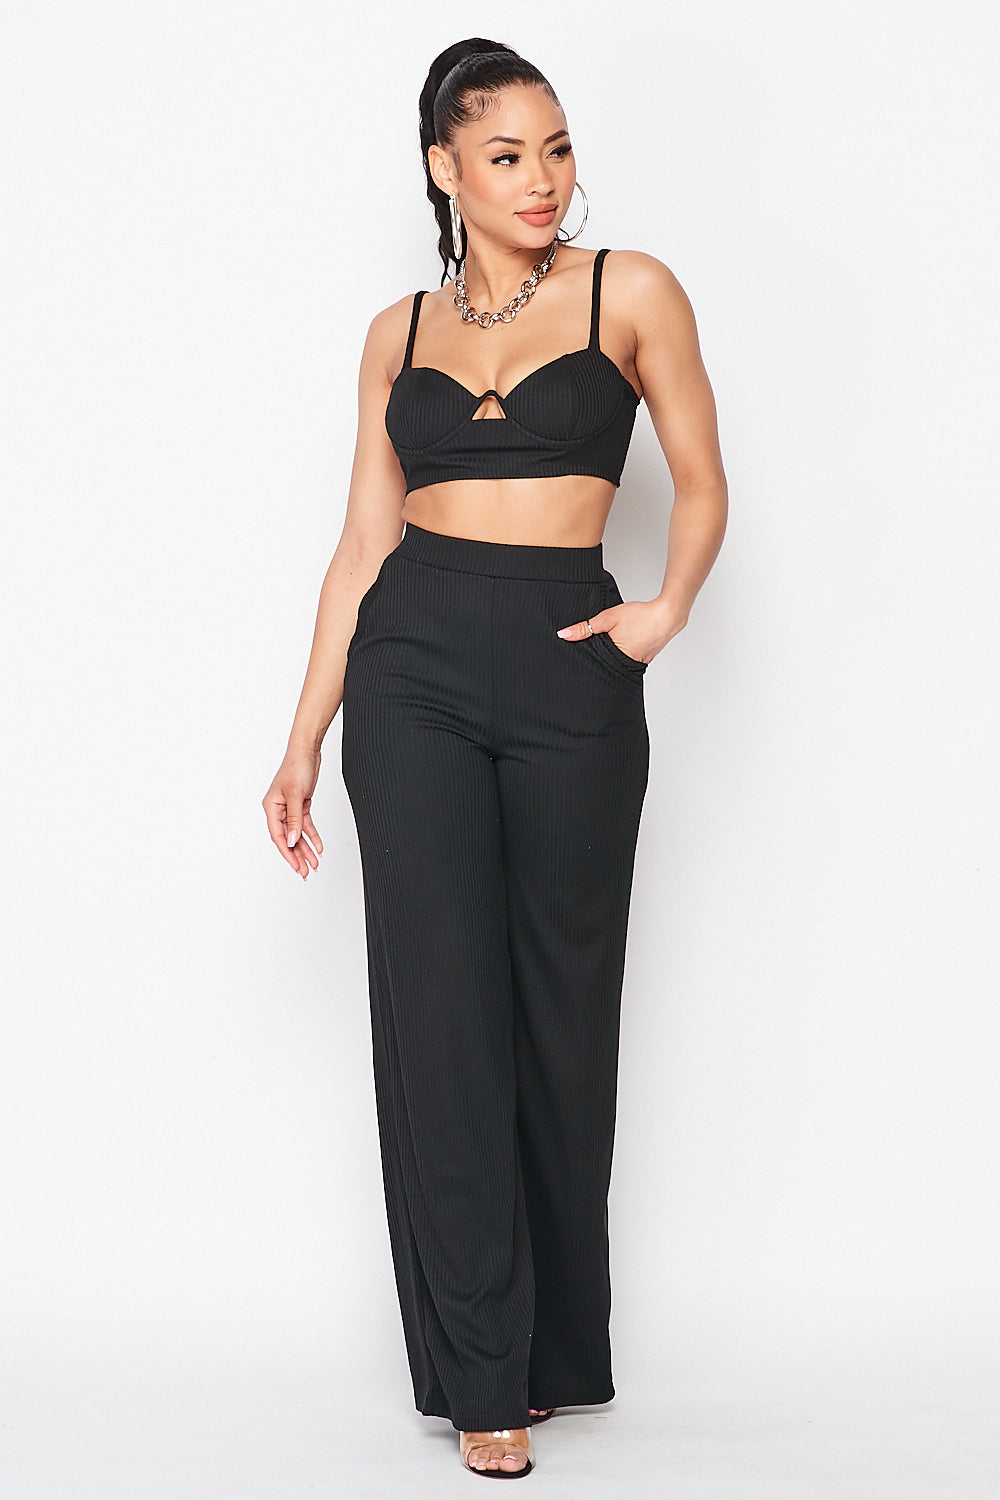 Ribbed Cami Top and Wide Leg Pants Set in Black - Fashion House USA